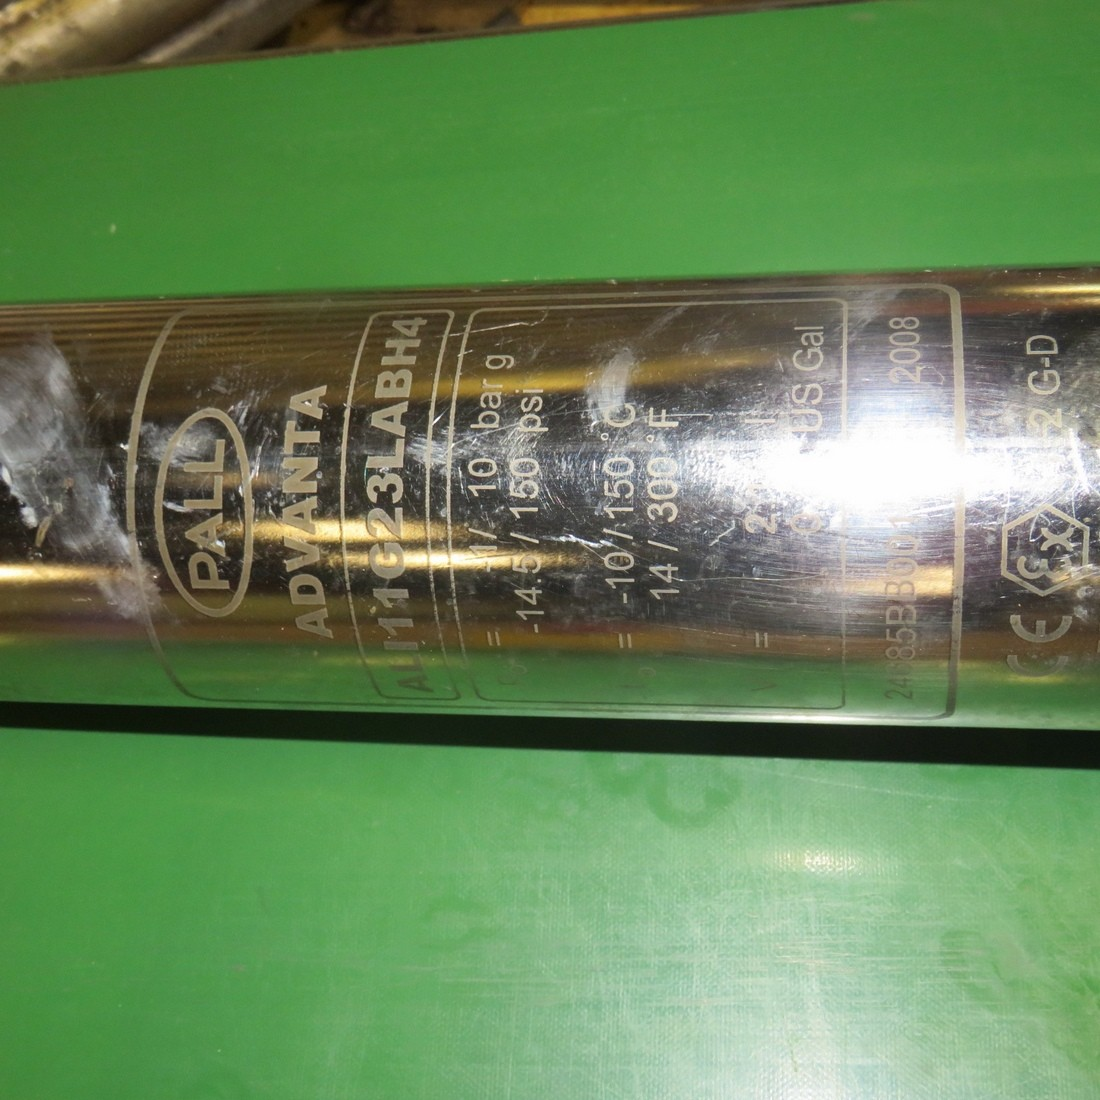 R6F1053 Stainless steel PALL Filter - ADVANTA Type